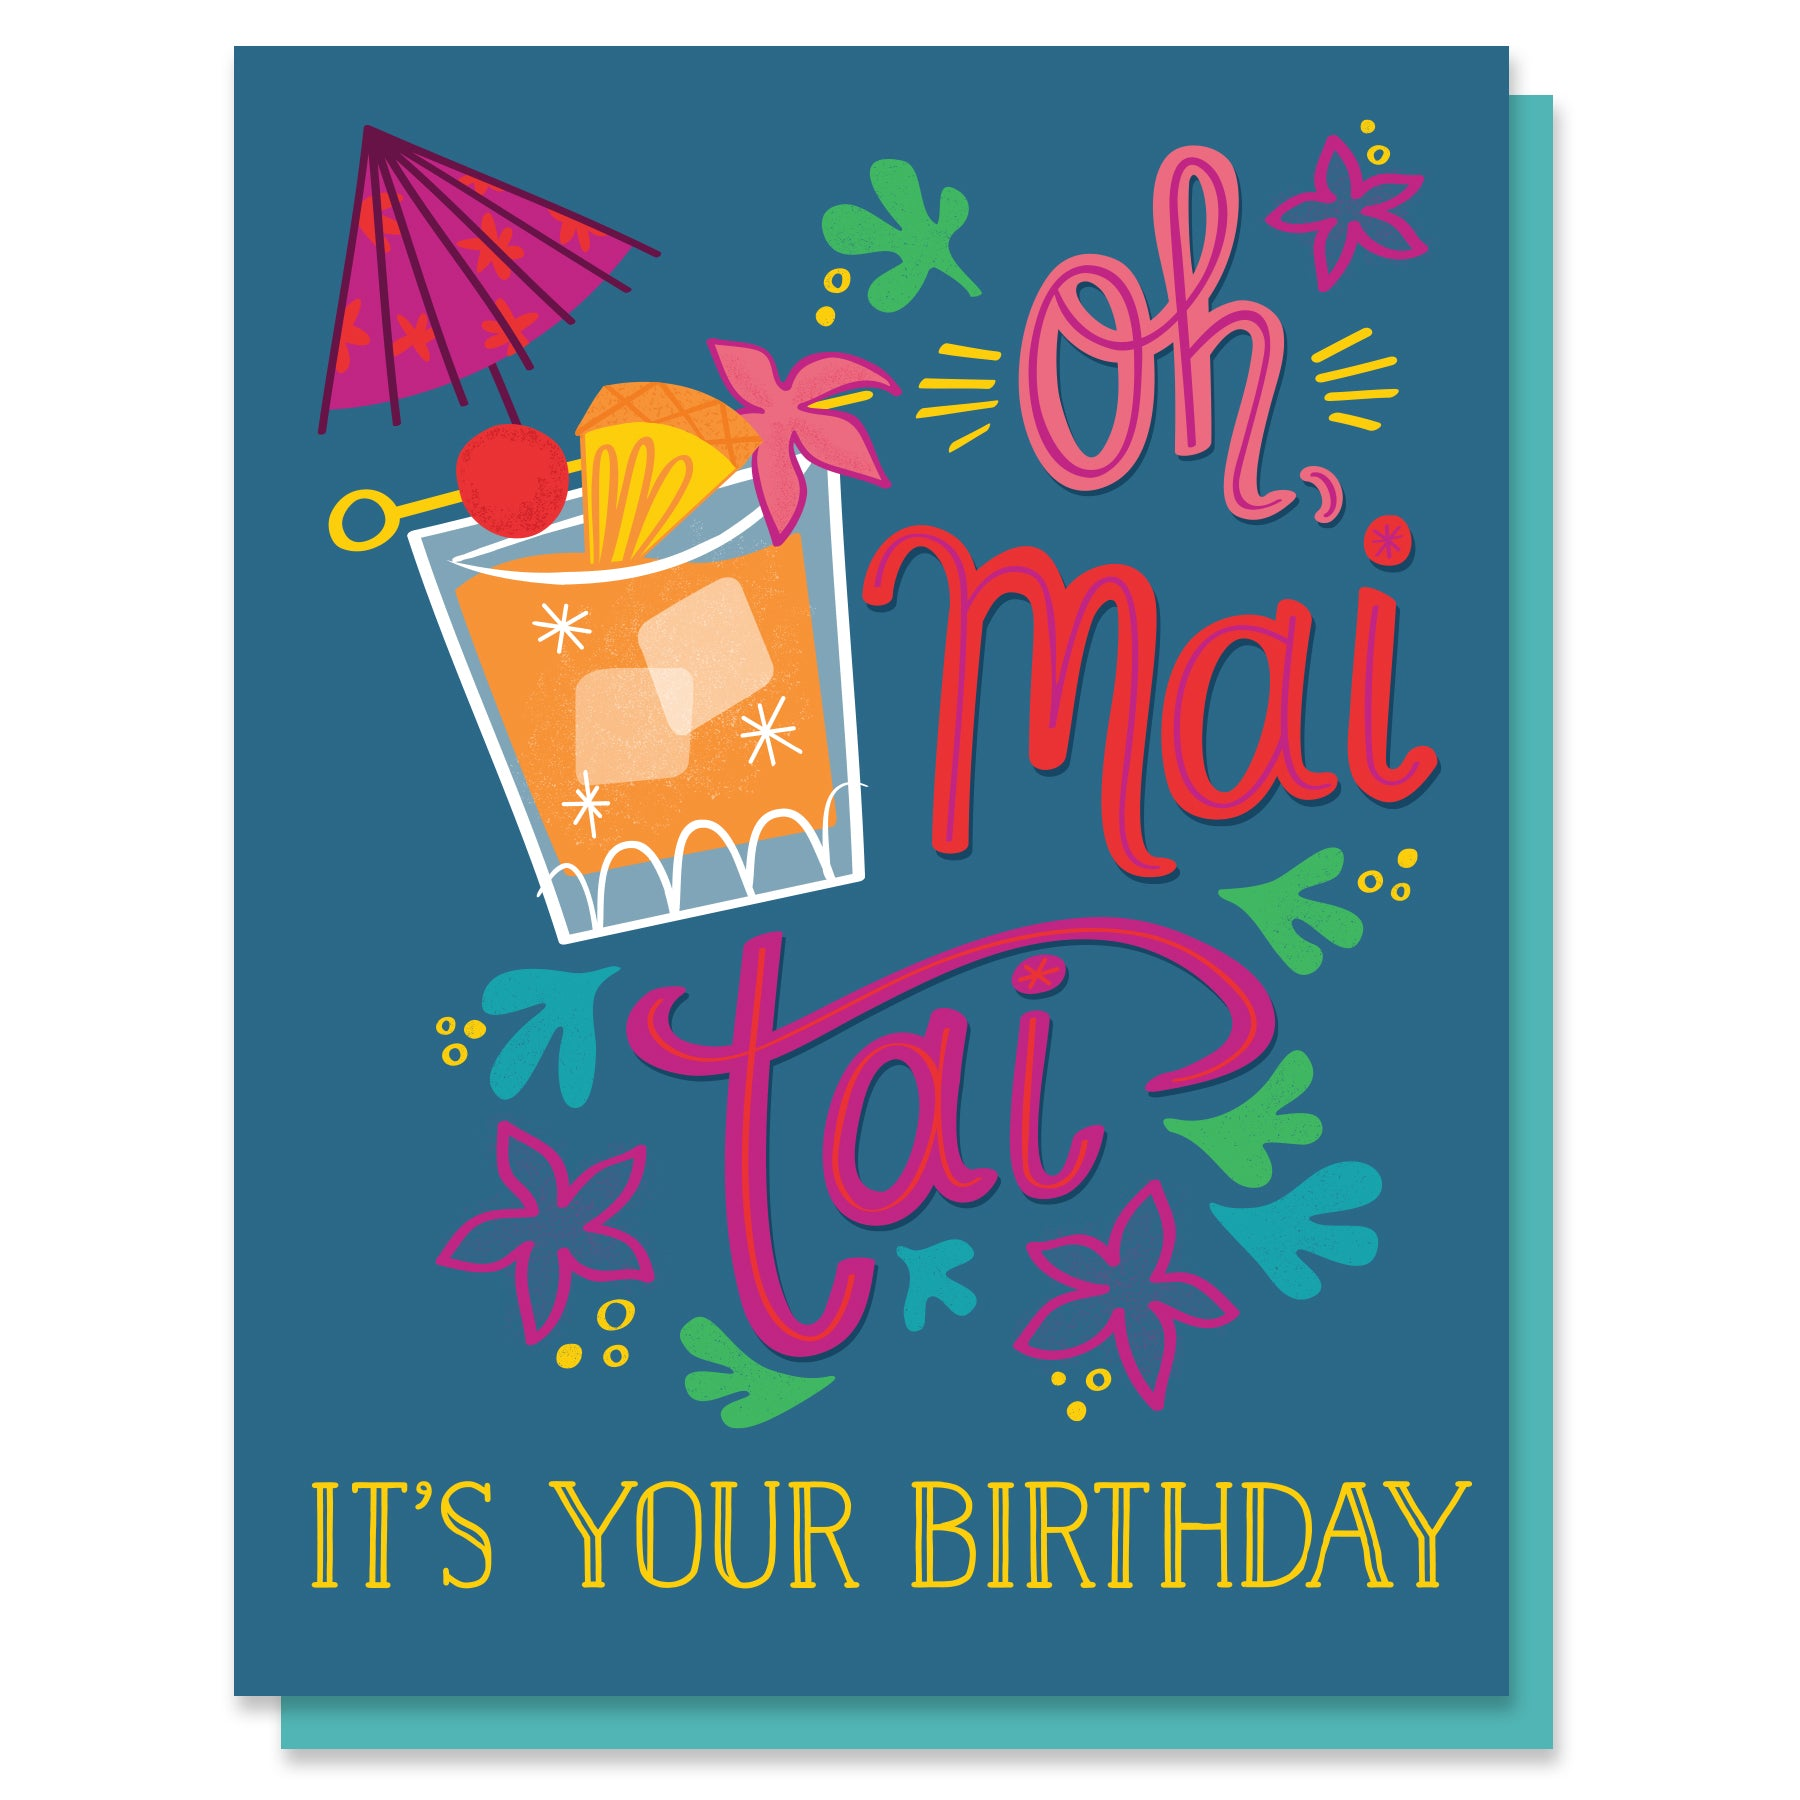 Oh Mai Tai Birthday Card